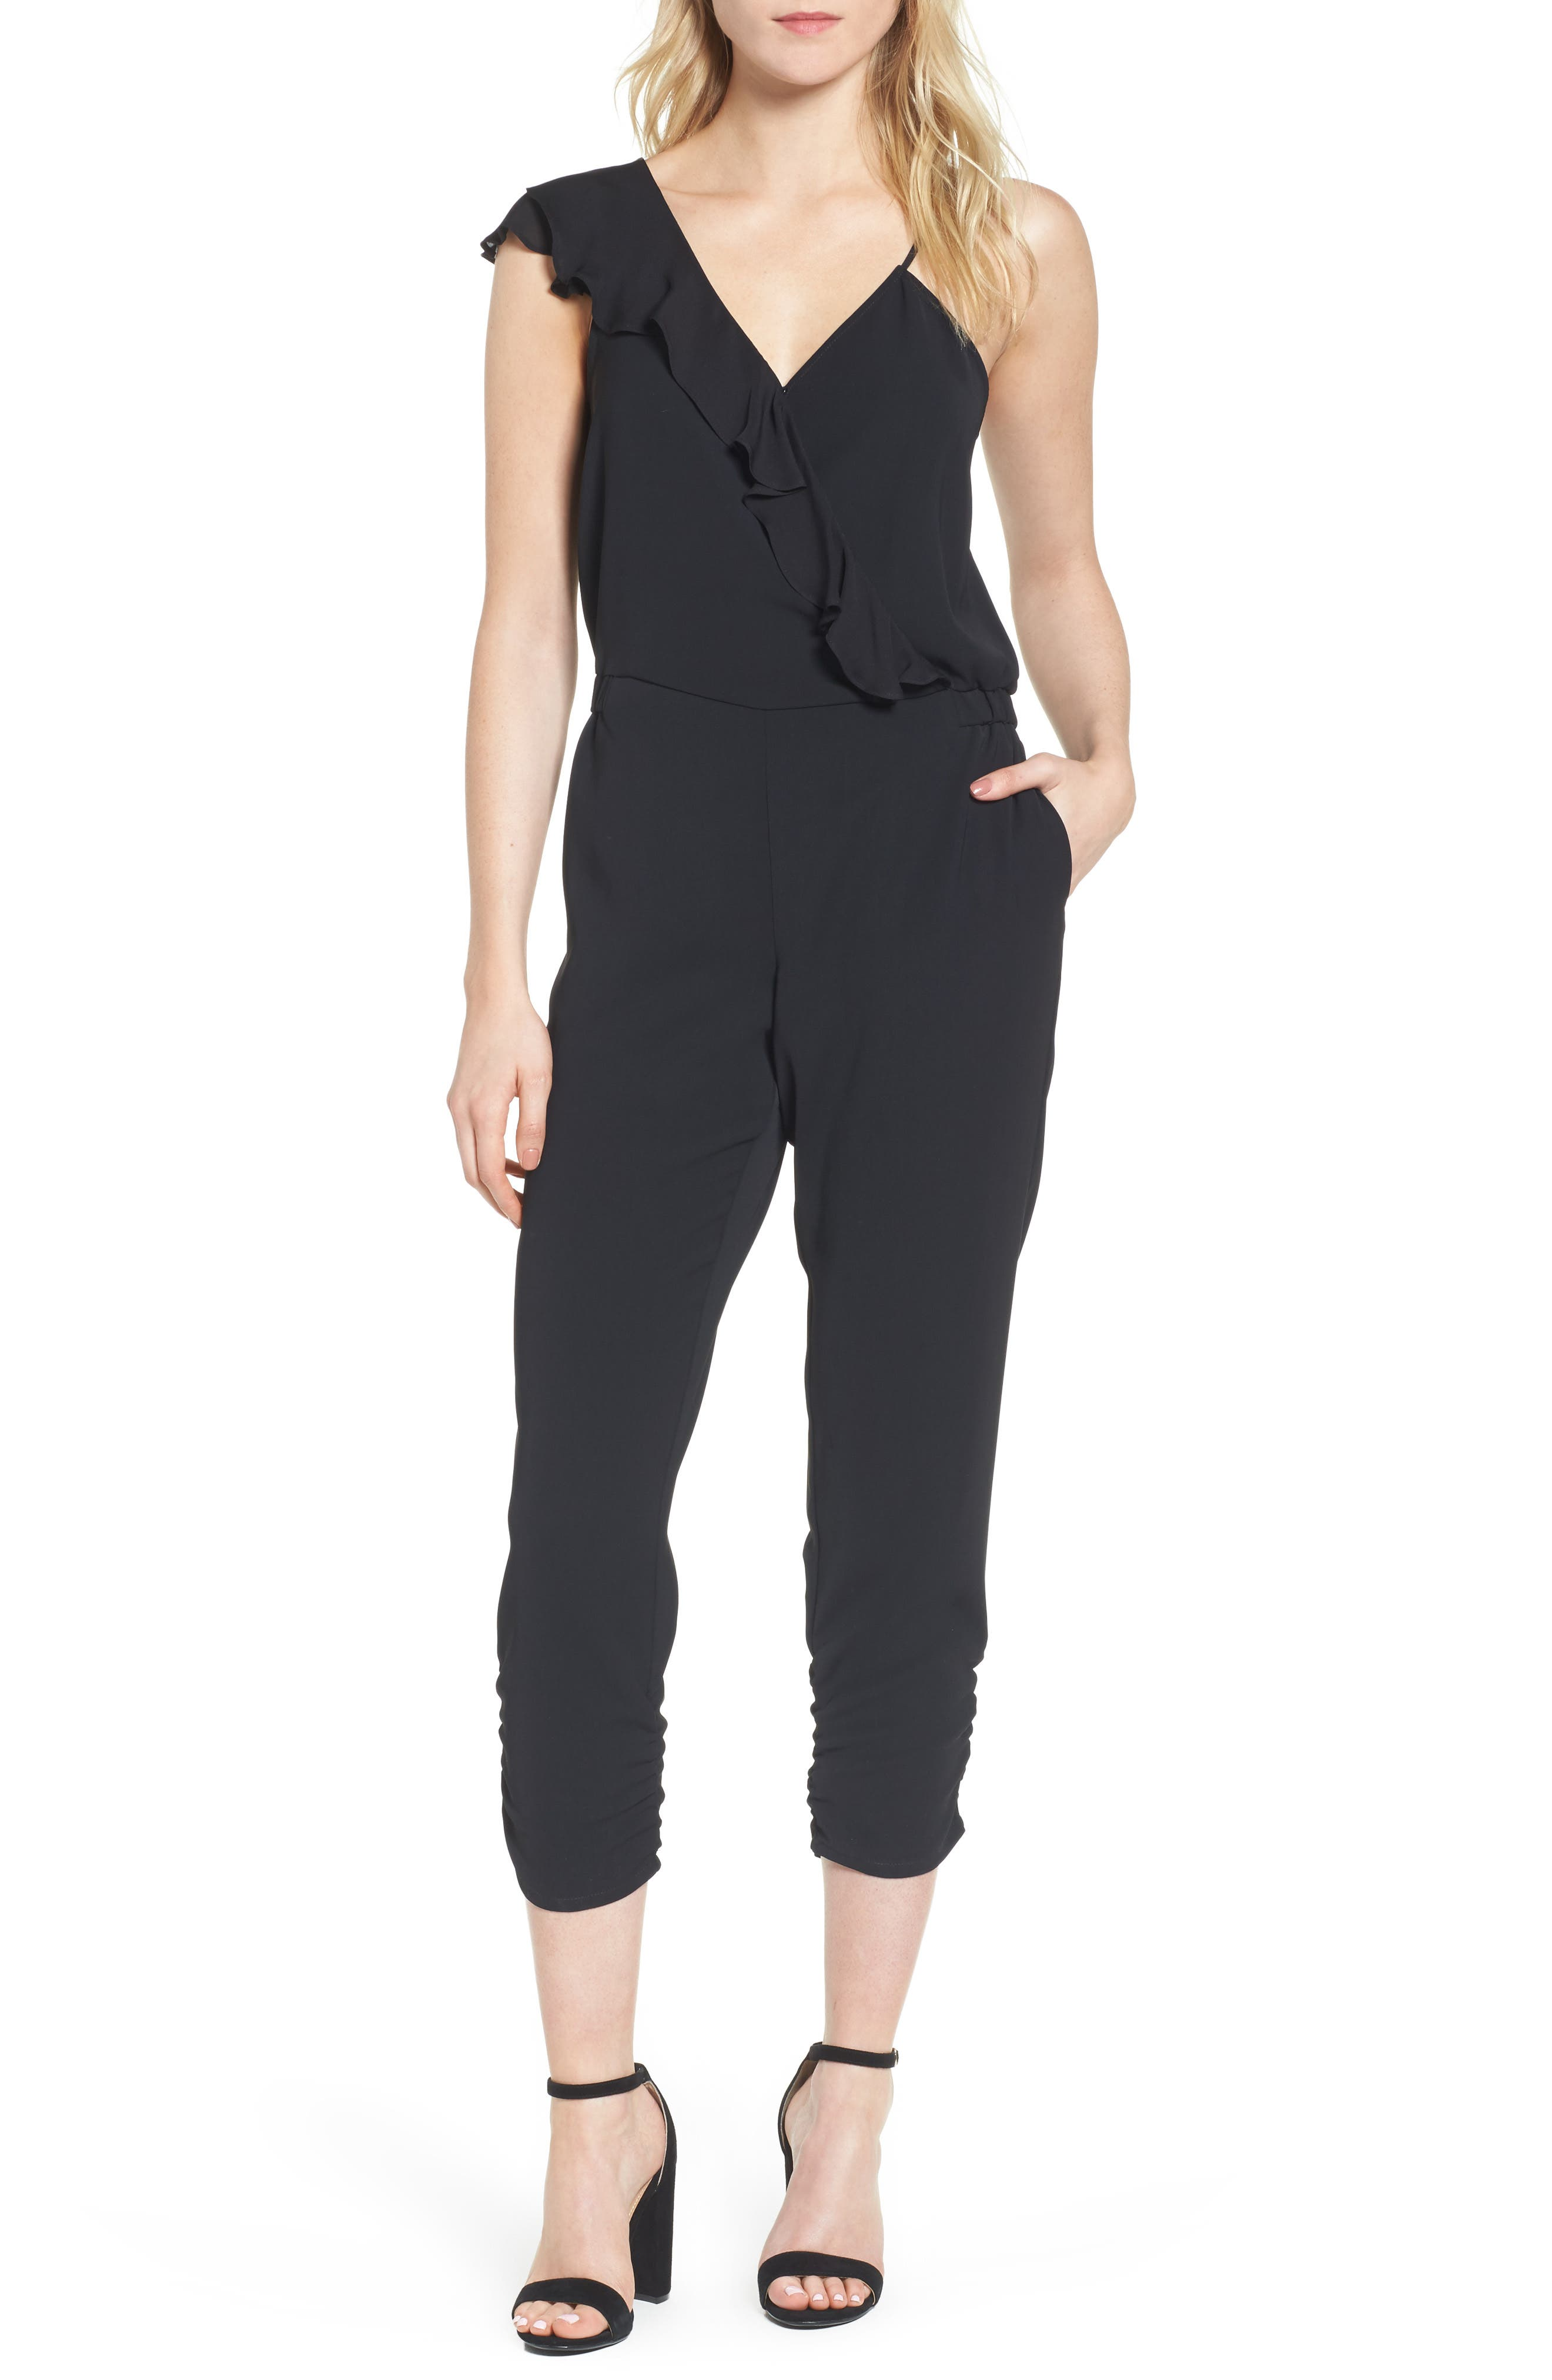 Addison Asymmetrical Jumpsuit,                         Main,                         color, Black